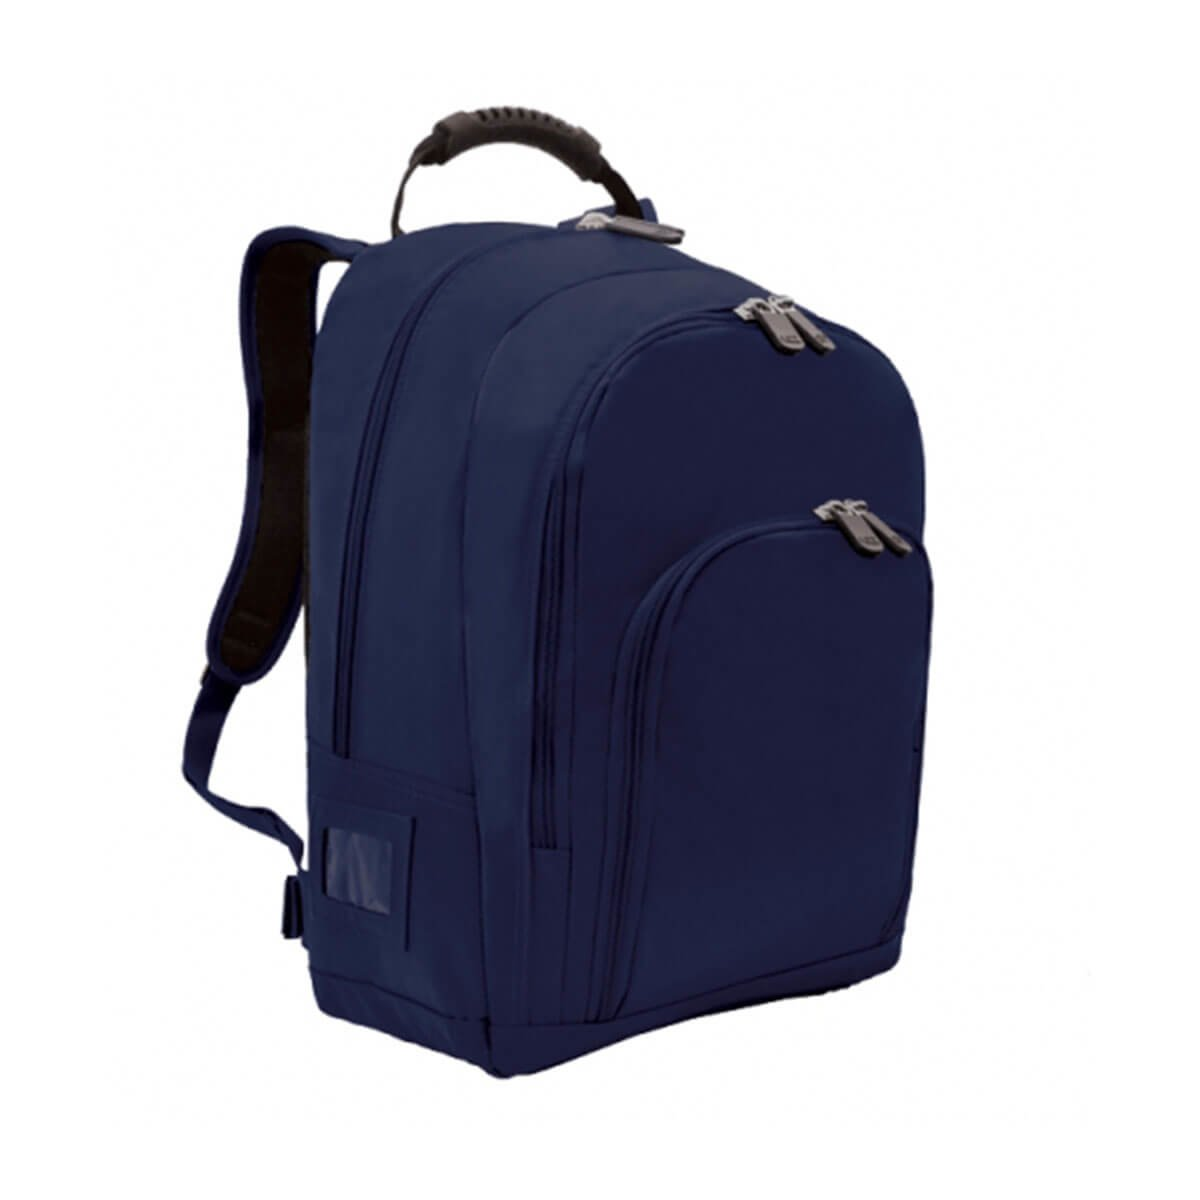 Castell Backpack-Navy